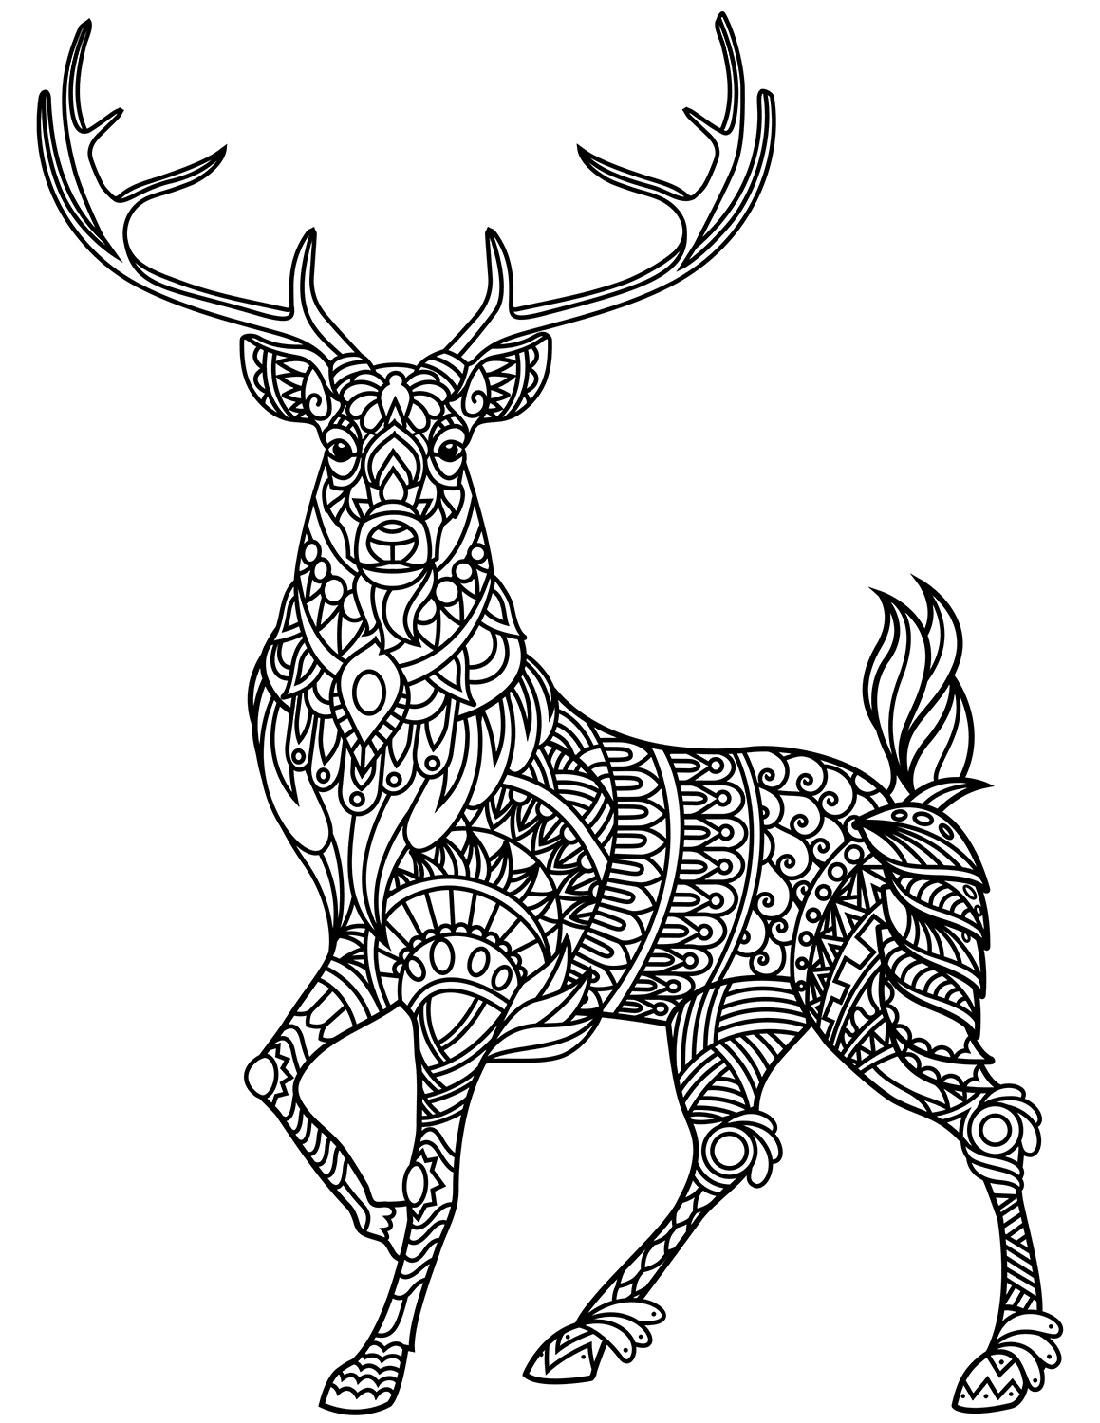 Deer Coloring Pages Zentangle